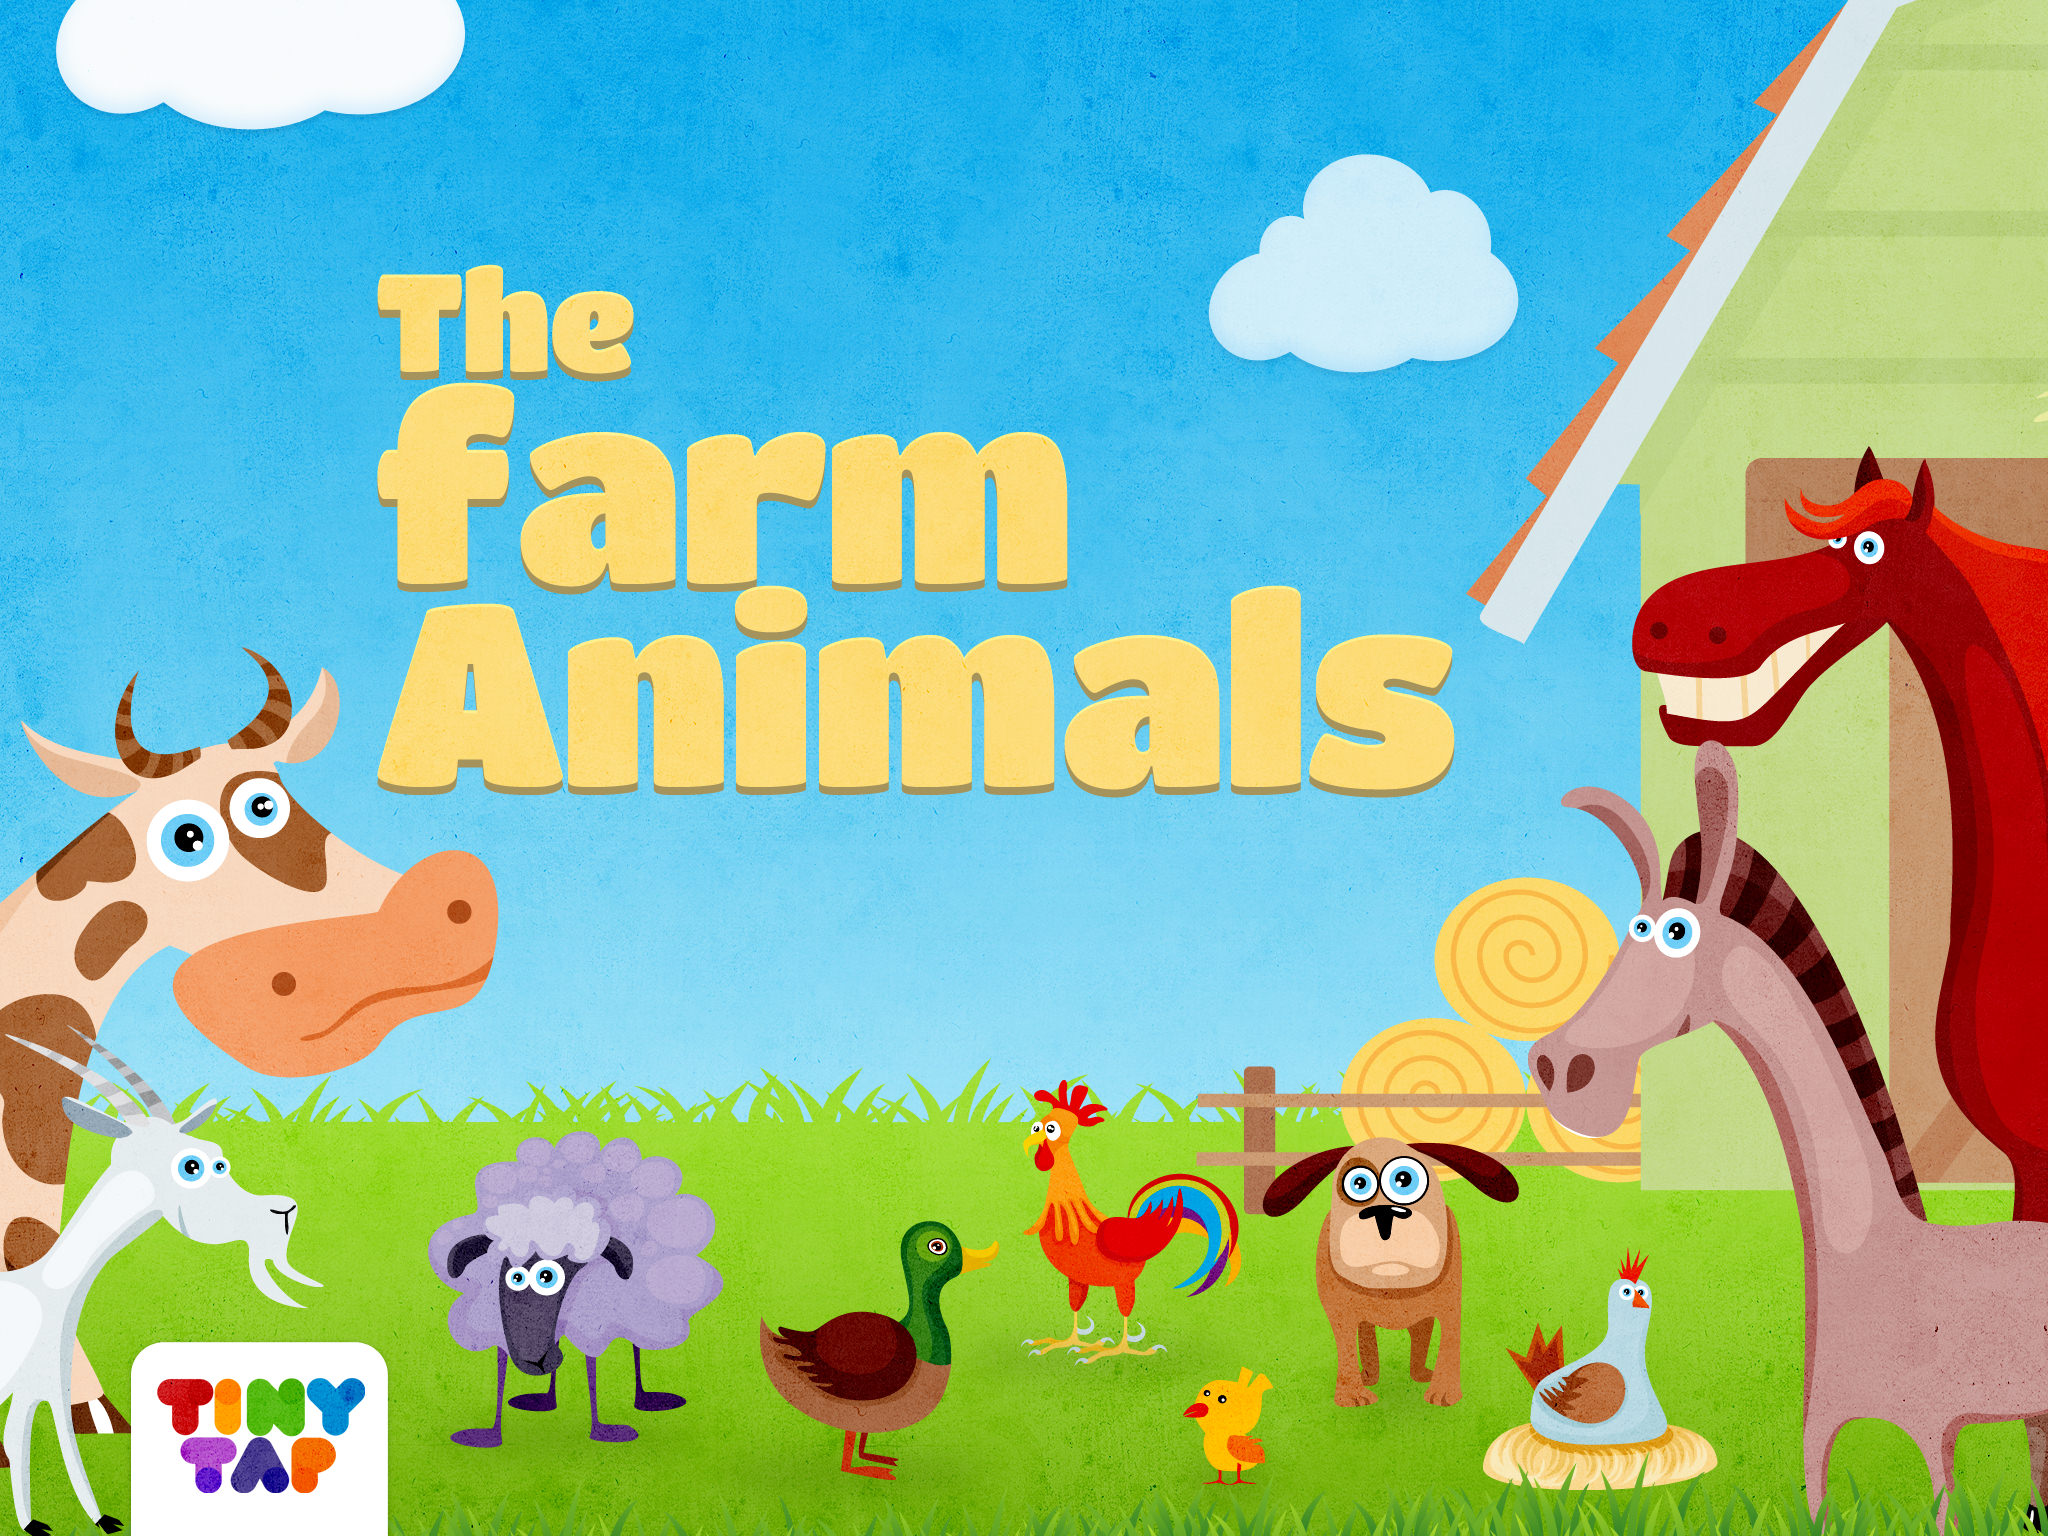 33   Cool farm animals wallpaper for Farm Animals Wallpaper Border  146hul